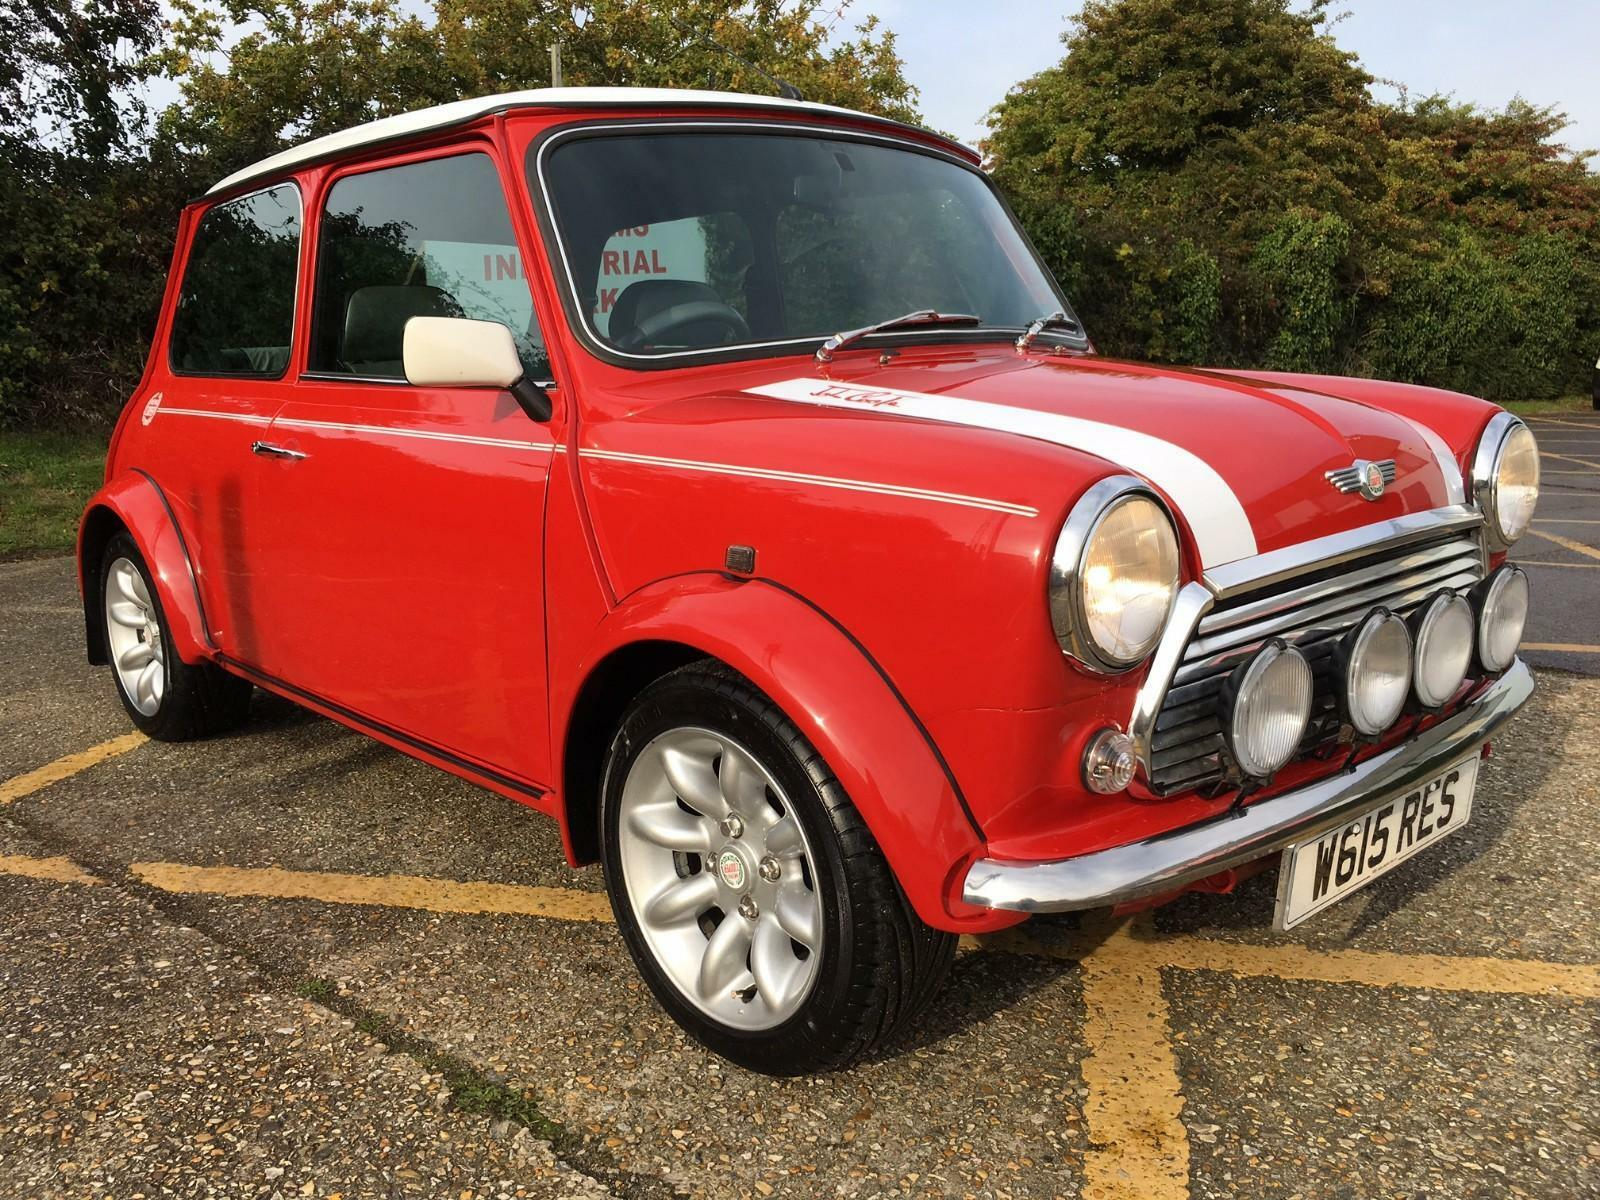 2000 rover mini cooper sport 1275cc mpi solar red only 64k stunning 8 picclick uk. Black Bedroom Furniture Sets. Home Design Ideas